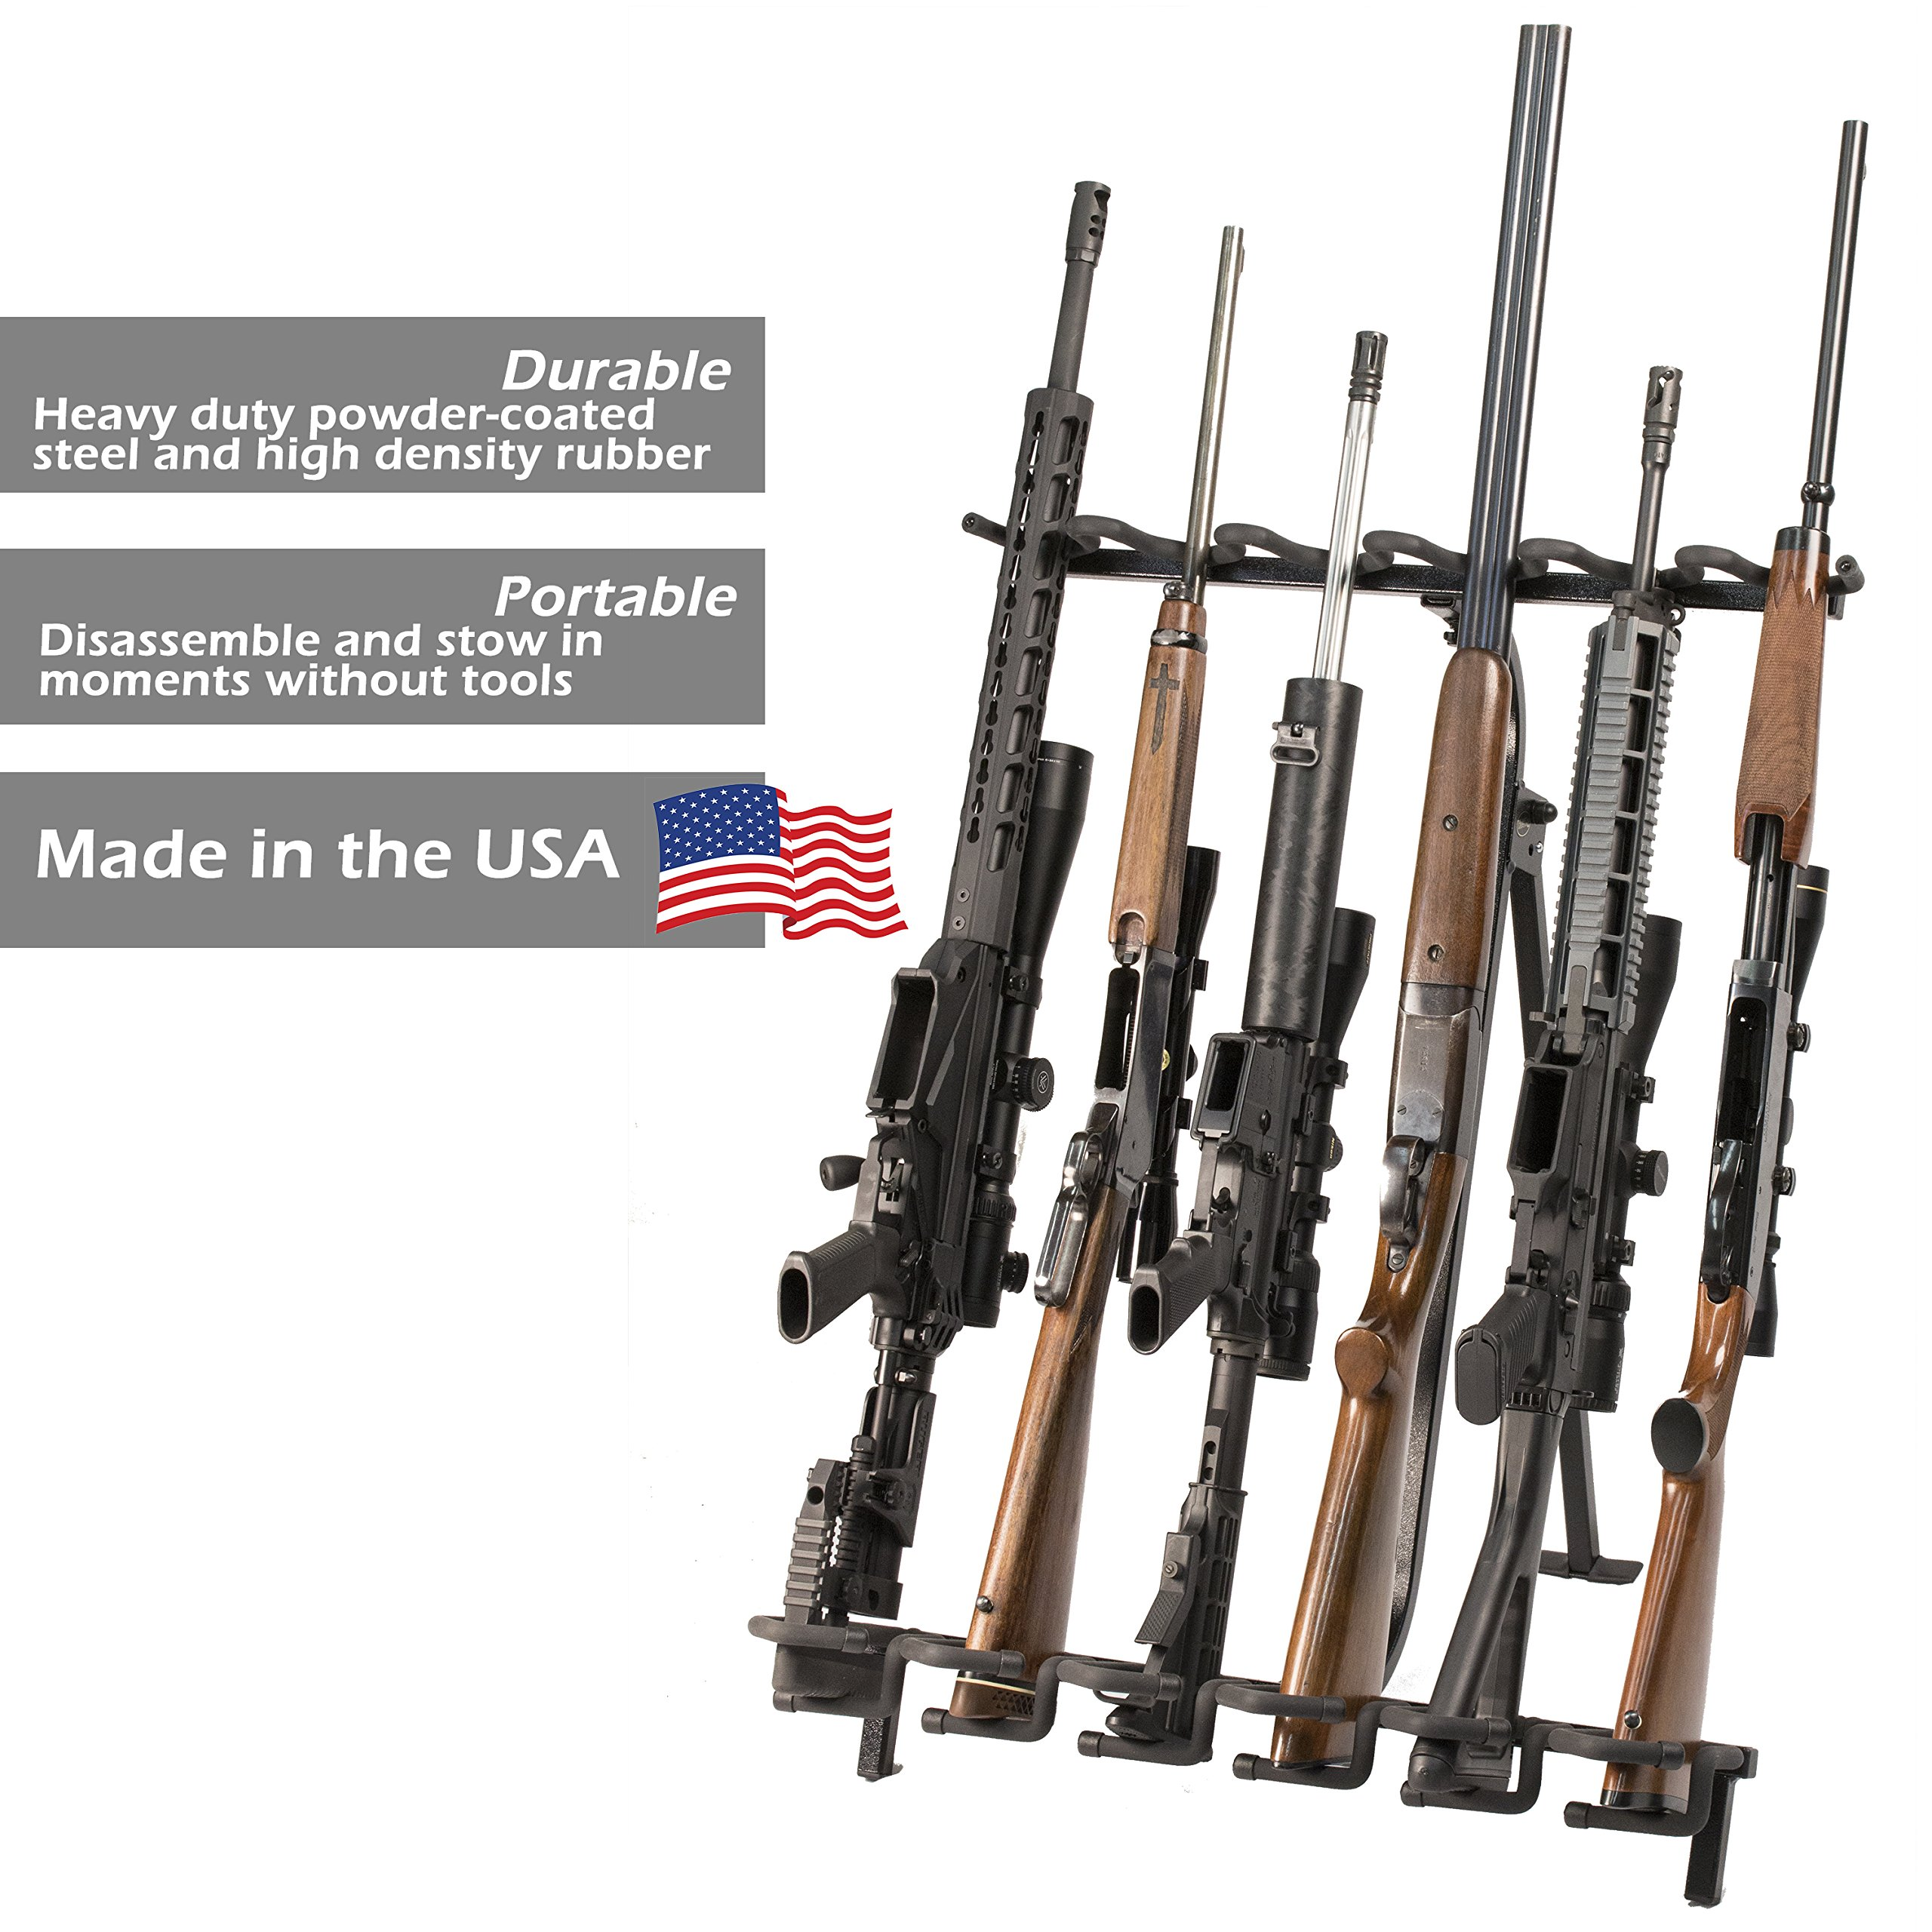 Hold Up Displays Portable Gun Rack and Bow Holder - Tactical Freestanding Folding Firearm Stand Holds Any Rifle or Bow - Keeps Guns Organized at The Shooting Range - Made in USA with Heavy Duty Steel by Hold Up Displays (Image #2)